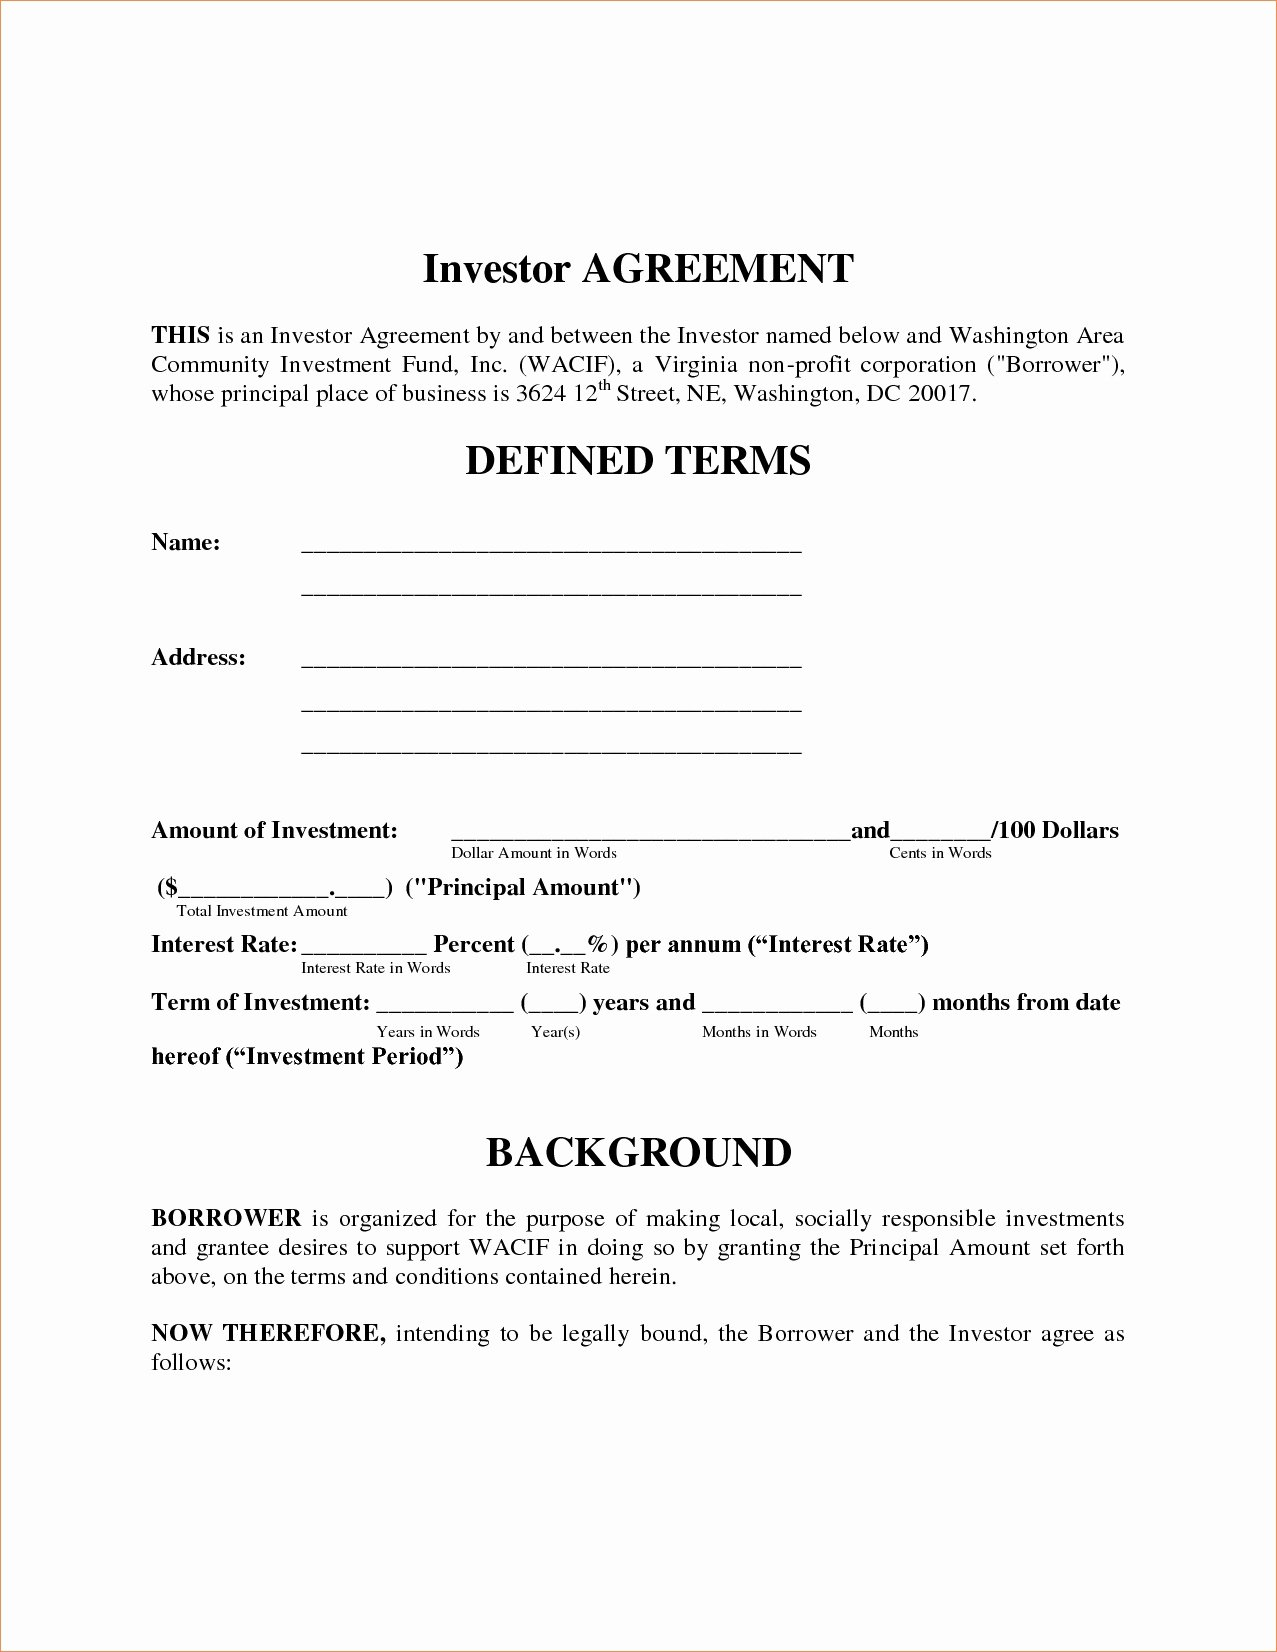 Investment Agreement Template Doc Elegant Investor Agreement Template Beepmunk